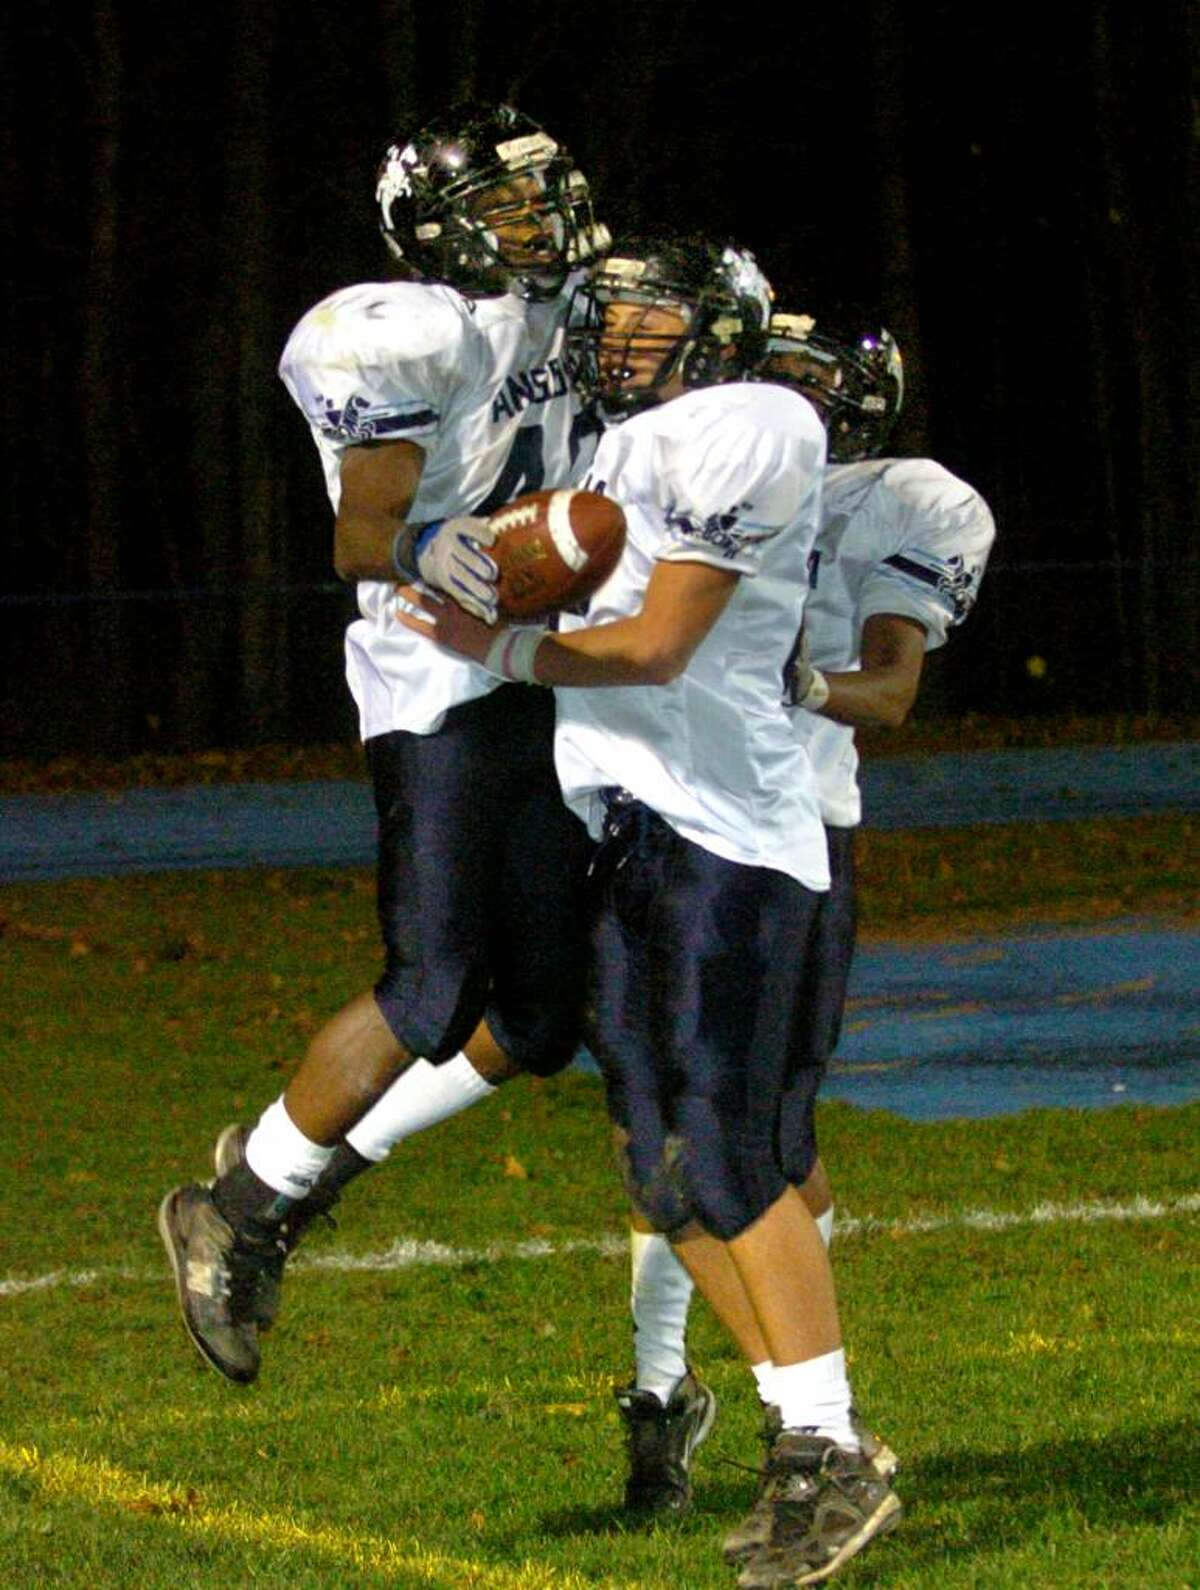 Christian Abraham/Staff photographer Ansonia's #40 Robert Kinnebrew, left, leaps into teammate #82 Jake LaRovera's arms after a touchdown, during football action against Seymour in Seymour, Conn. on Thursday Nov. 12, 2009. Ansonia defeated Seymour 51-21.